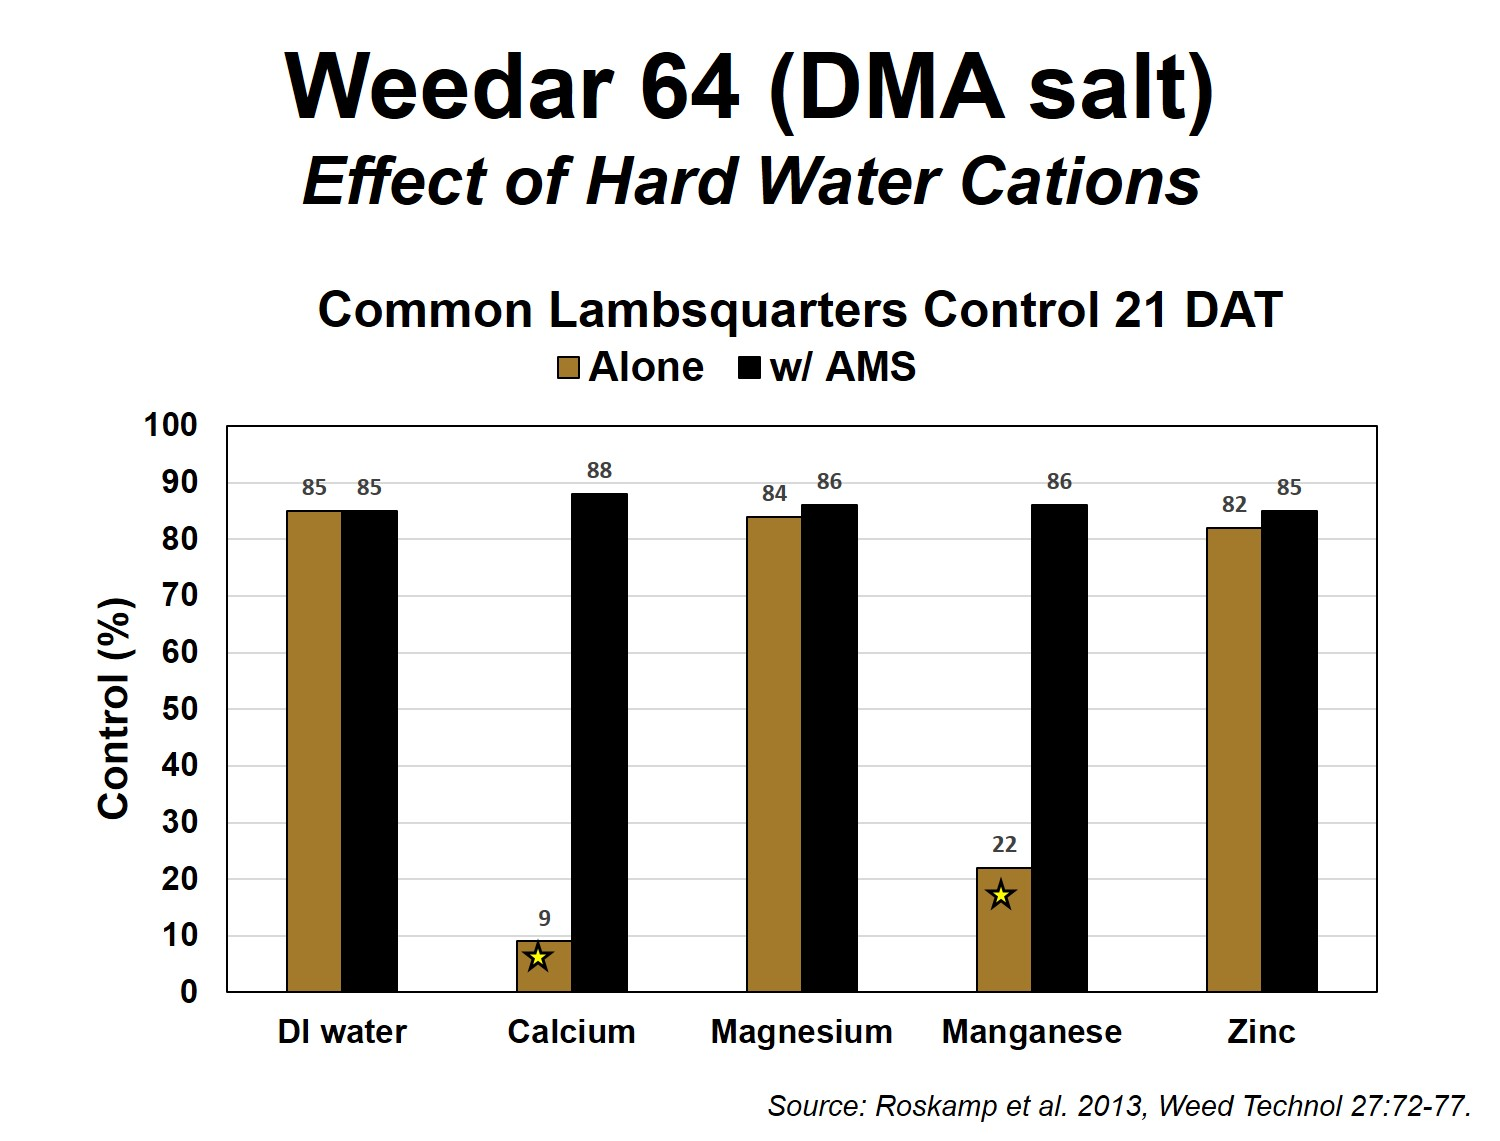 Figure 3. Effect of hard water cations on herbicide efficacy of weak acid herbicides.